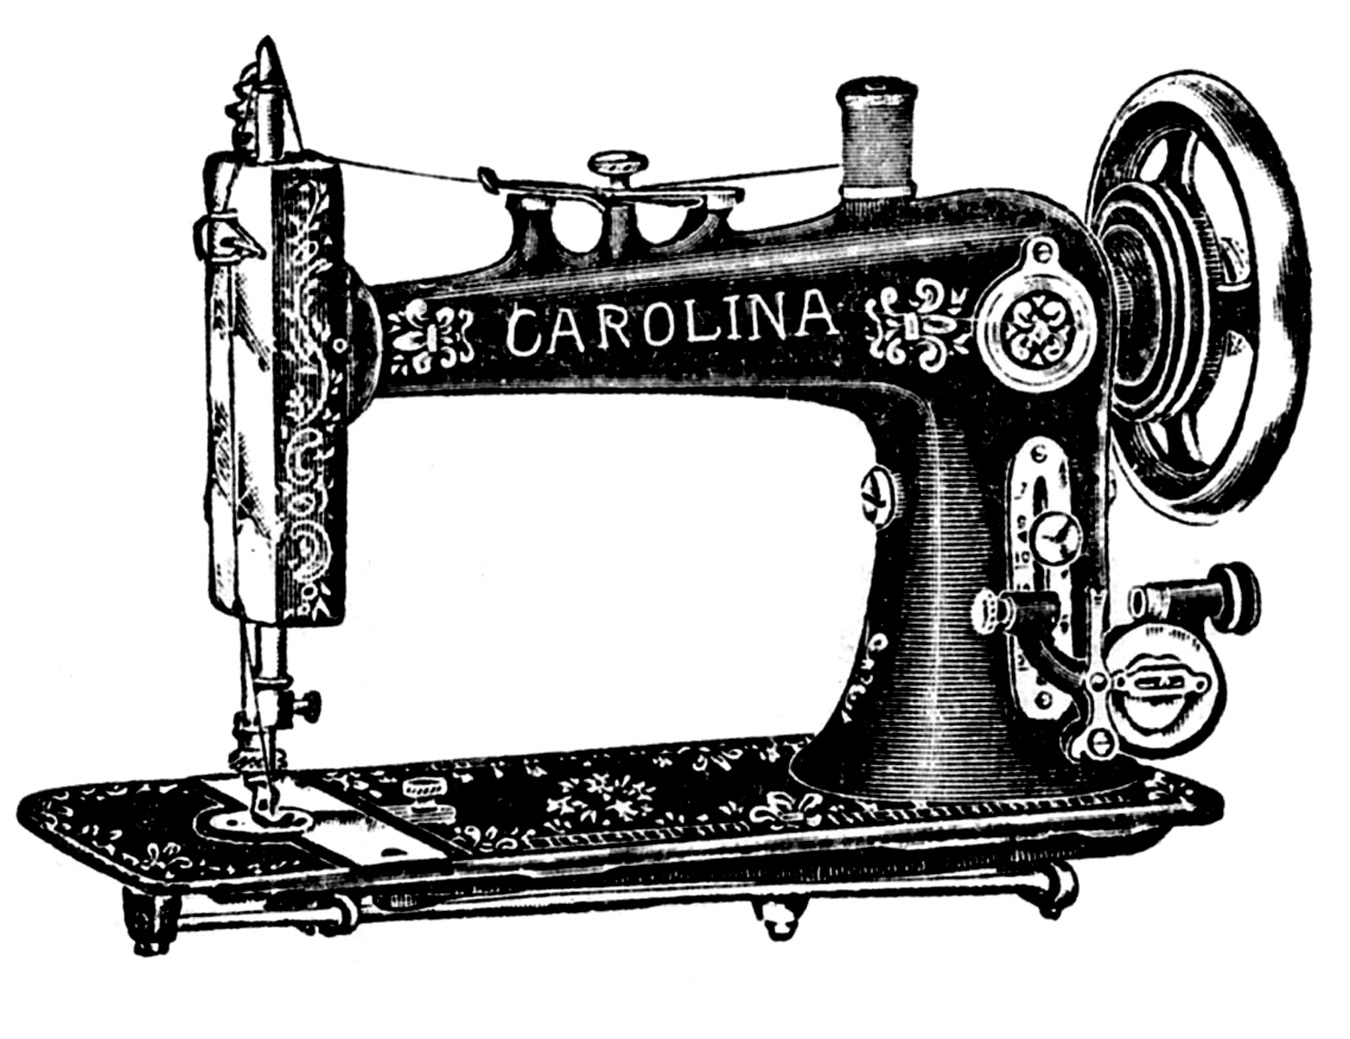 Sewing machine images clipart graphic black and white stock 6 Antique Sewing Machine Pictures! - The Graphics Fairy graphic black and white stock